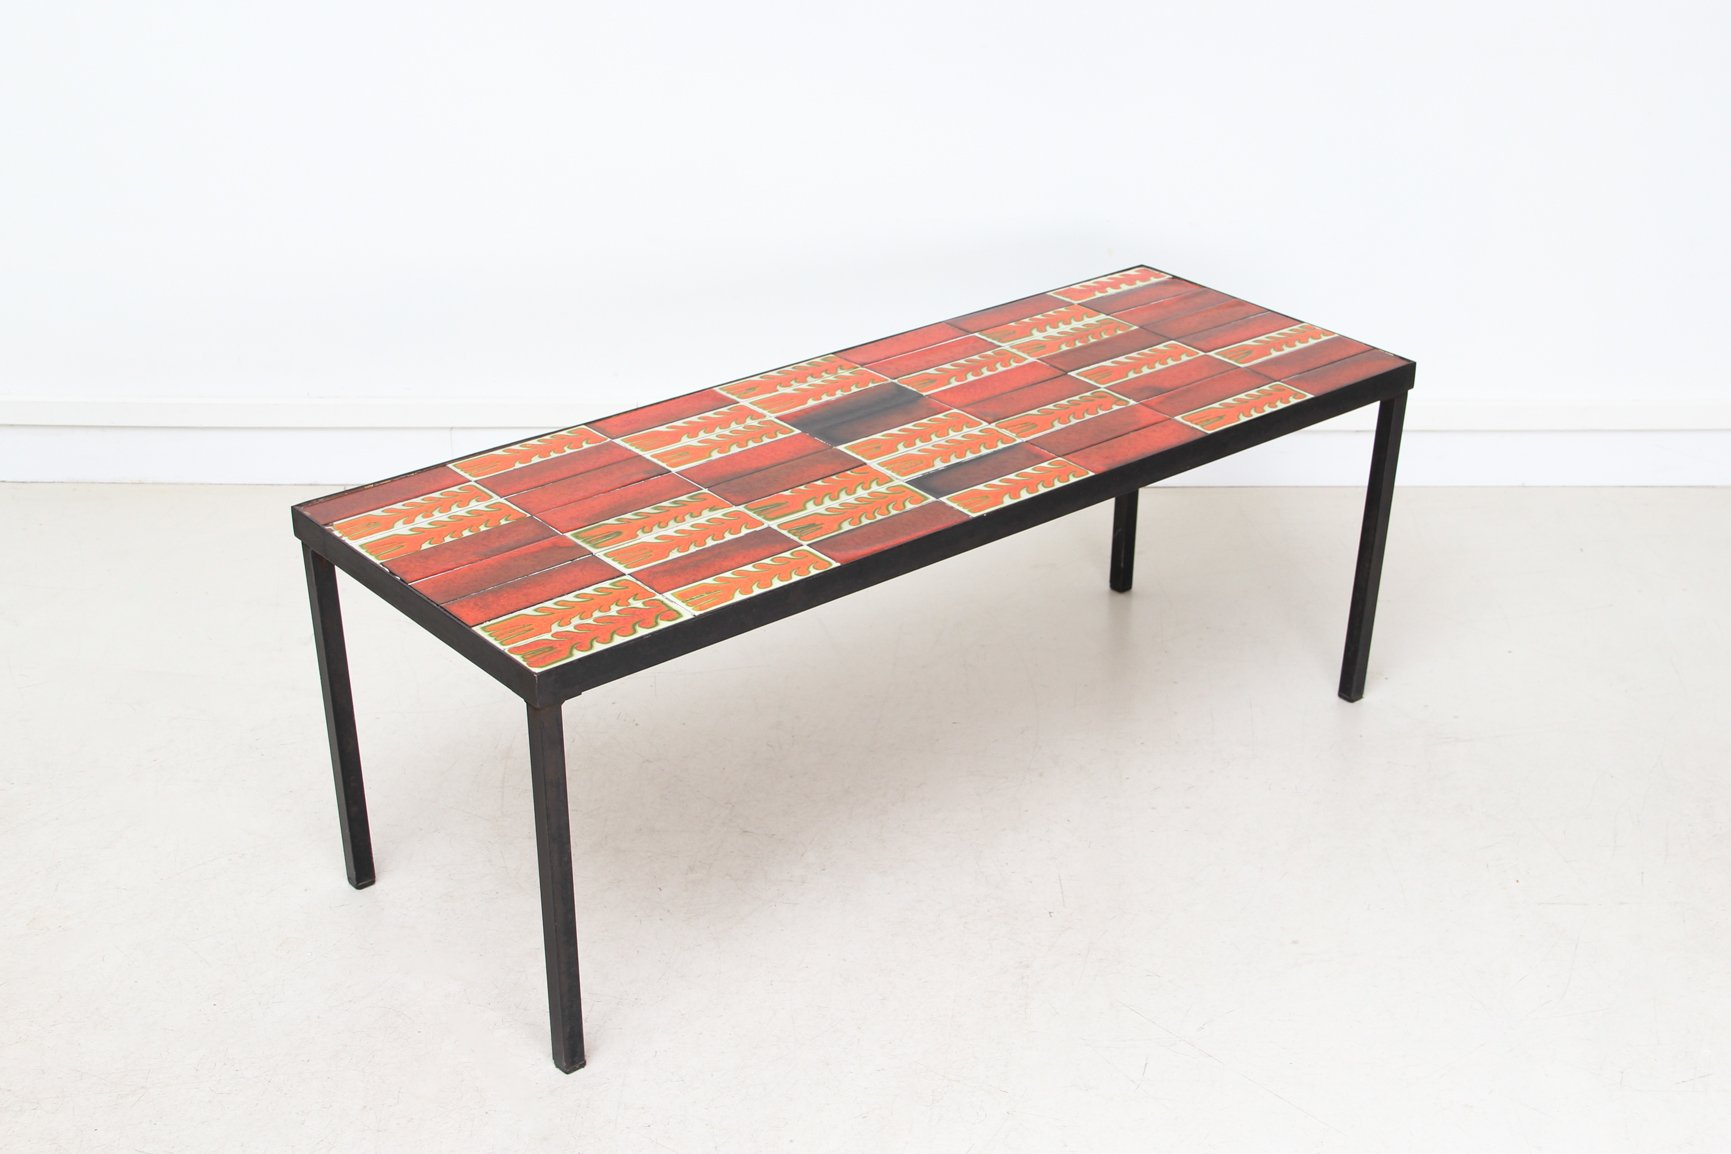 Mid Century Ceramic Tile Coffee Table by Roger Capron 1950s for